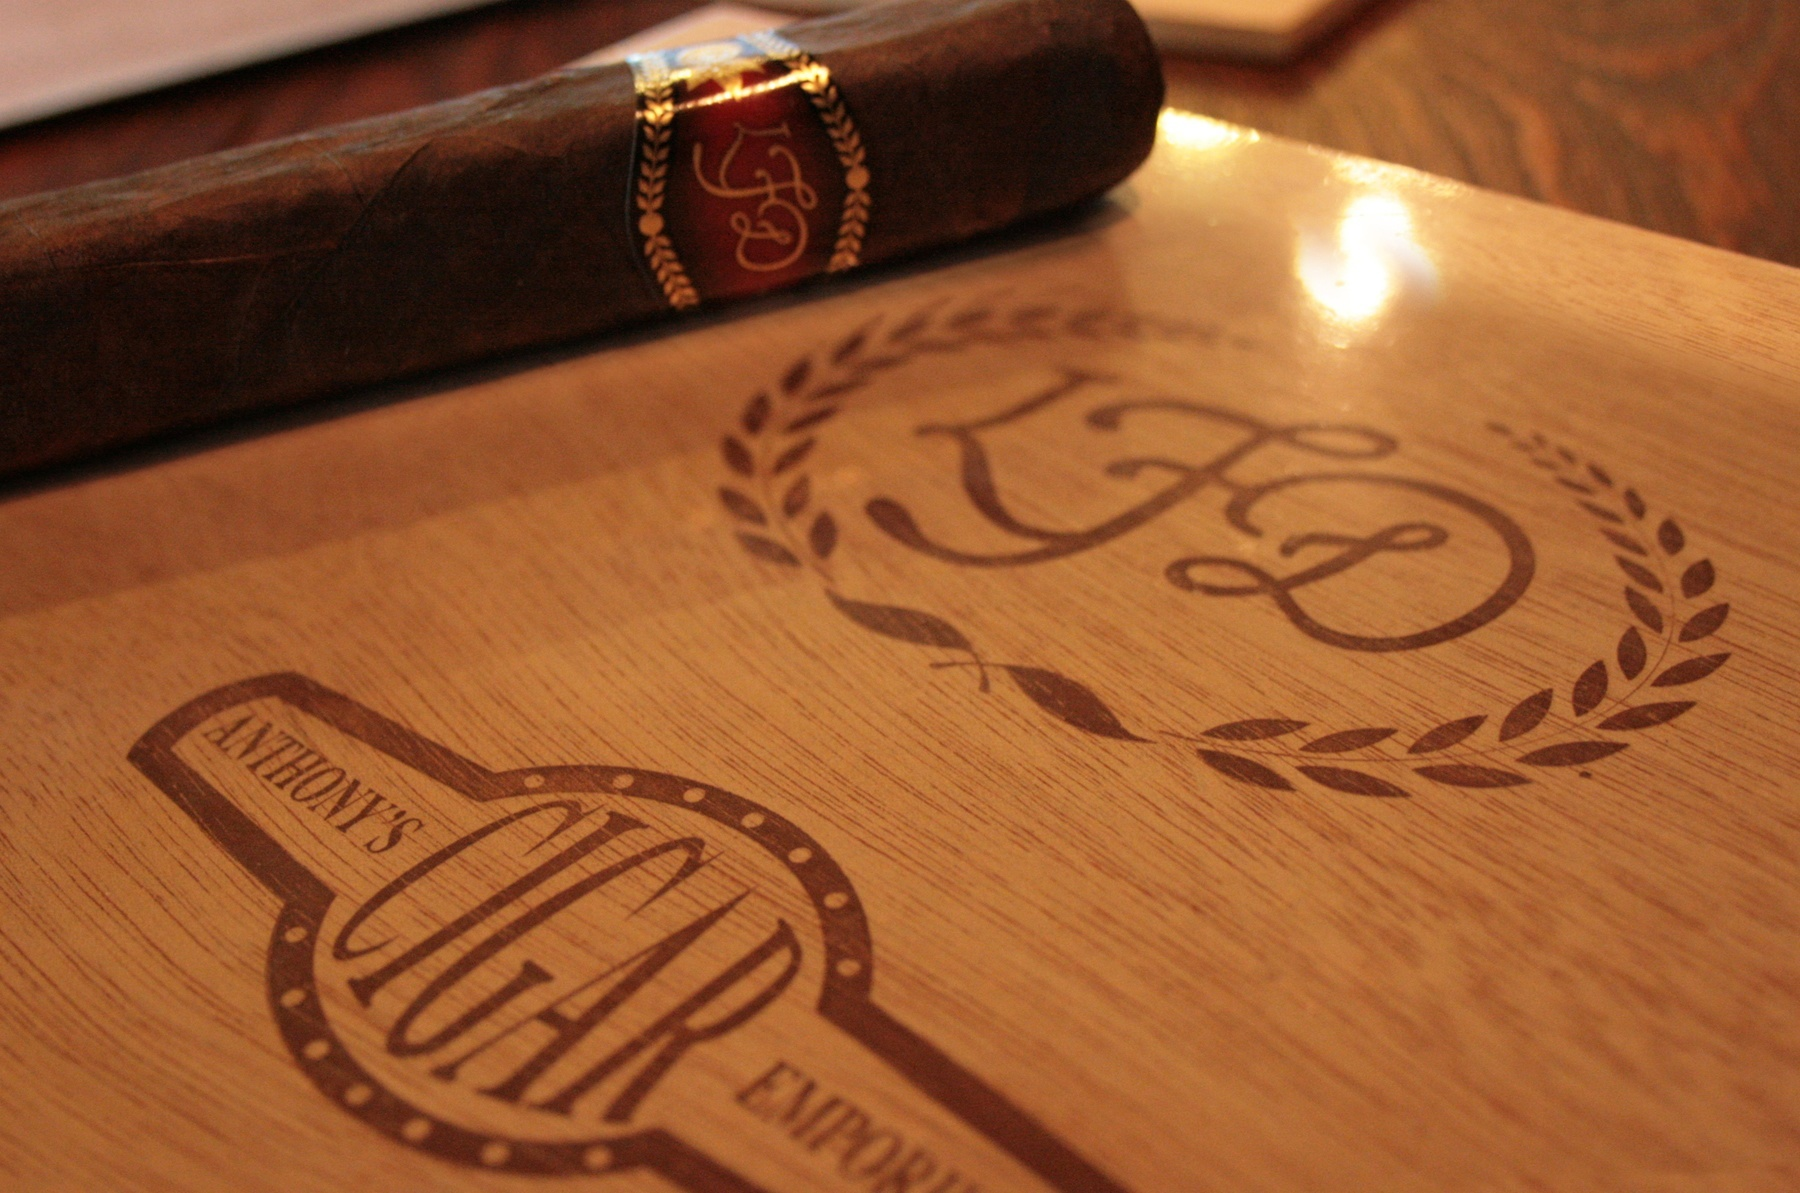 La Flor Dominicana Anthonys Cigar Emporium 20th-1